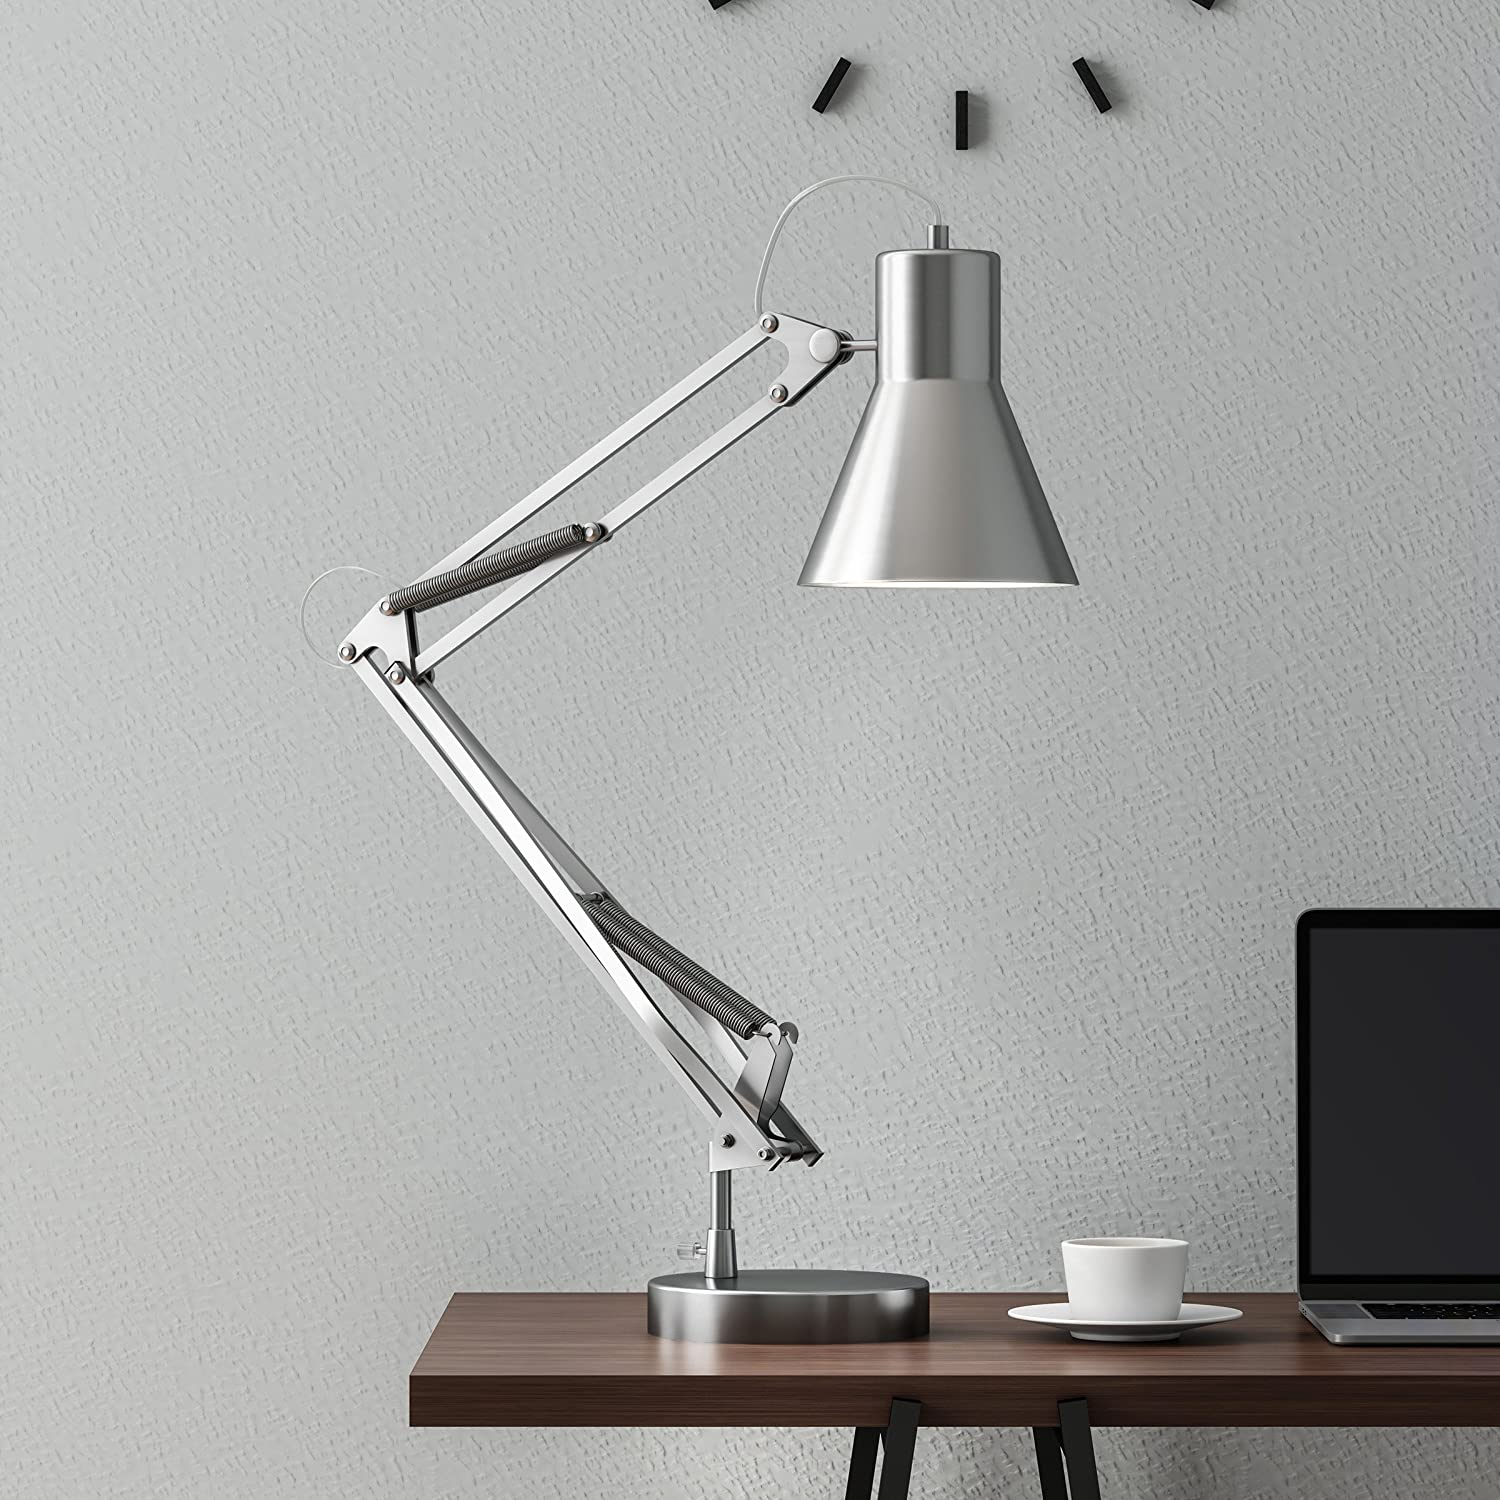 Lavish Home (Brushed Steel Architect Desk Lamp-LED Task Adjustable Swing Arm for Home and Office-Includes Energy Efficient Light Bulb